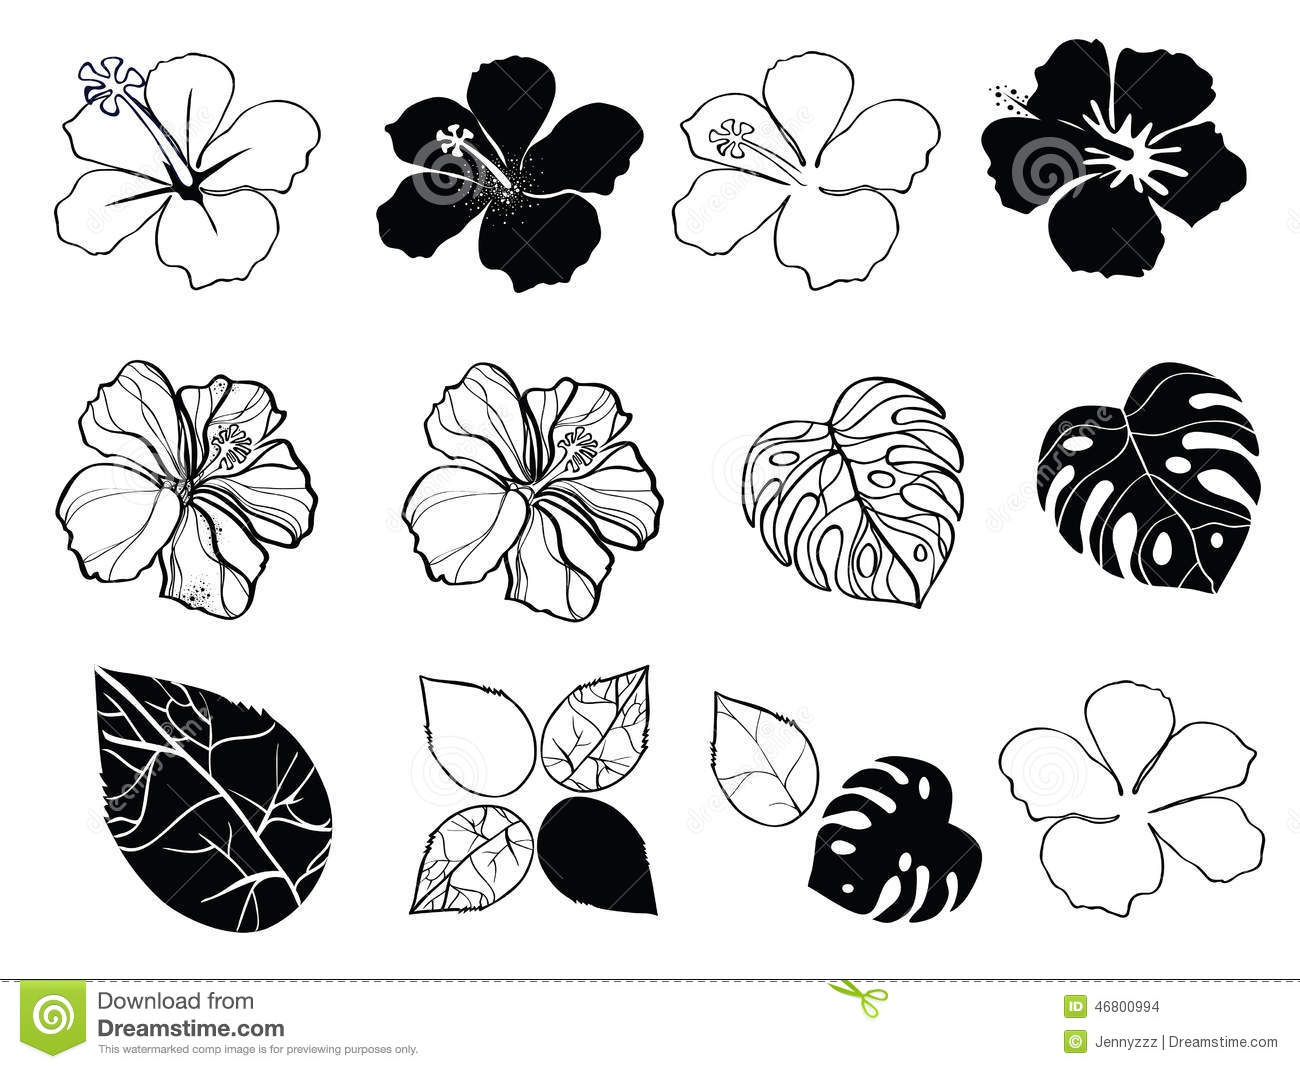 Black and white flowers of hibiscus stock vector illustration of black and white flowers of hibiscus mightylinksfo